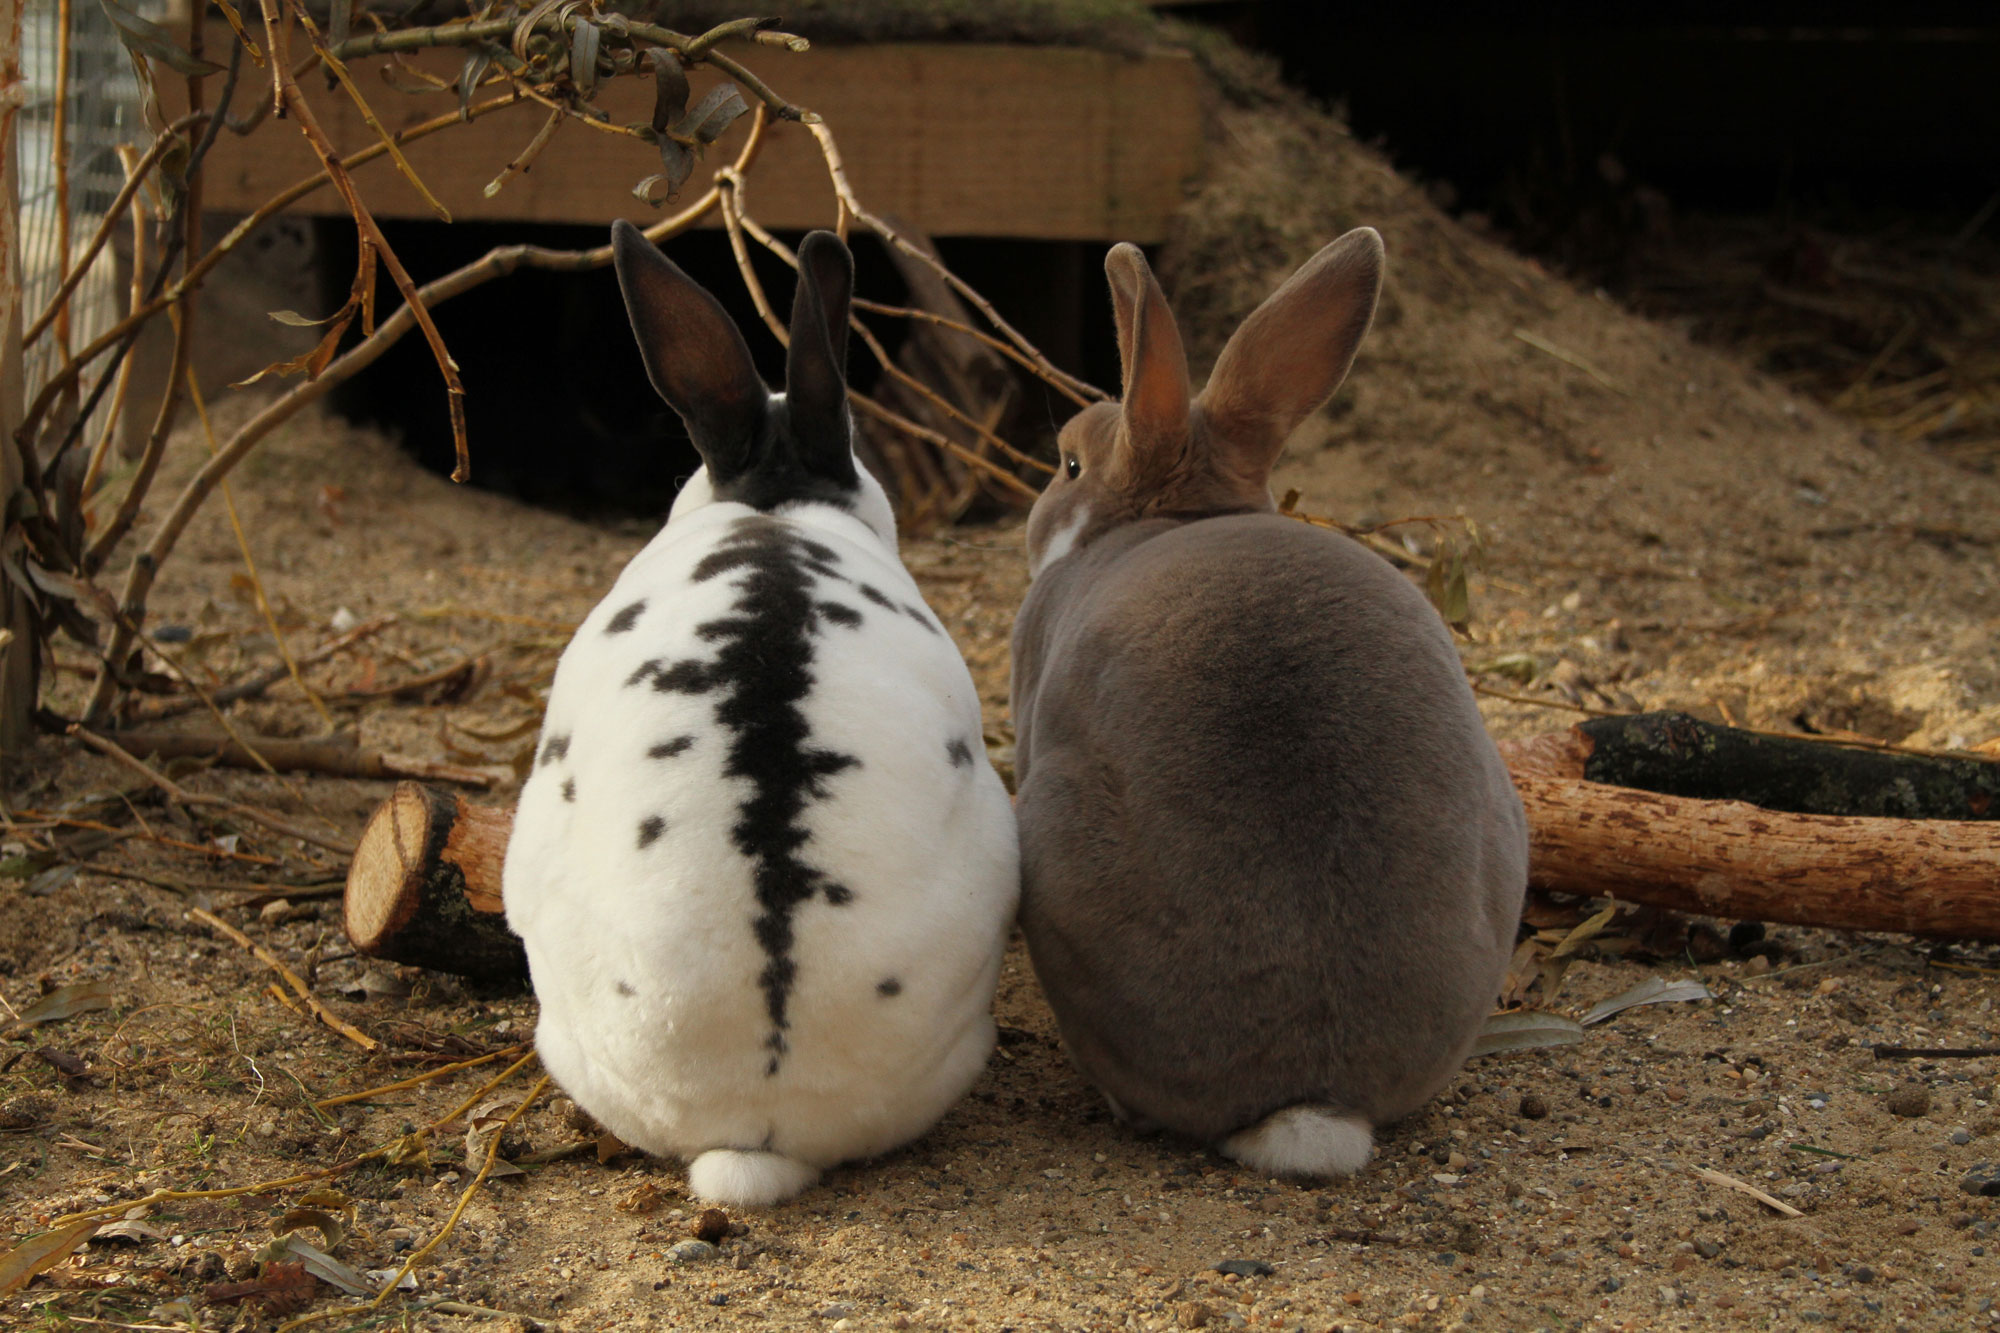 Two rabbits sit with their backs to the camera in an outdoor hutch. The one to the left is white with grey patches and the one to the right is grey all over